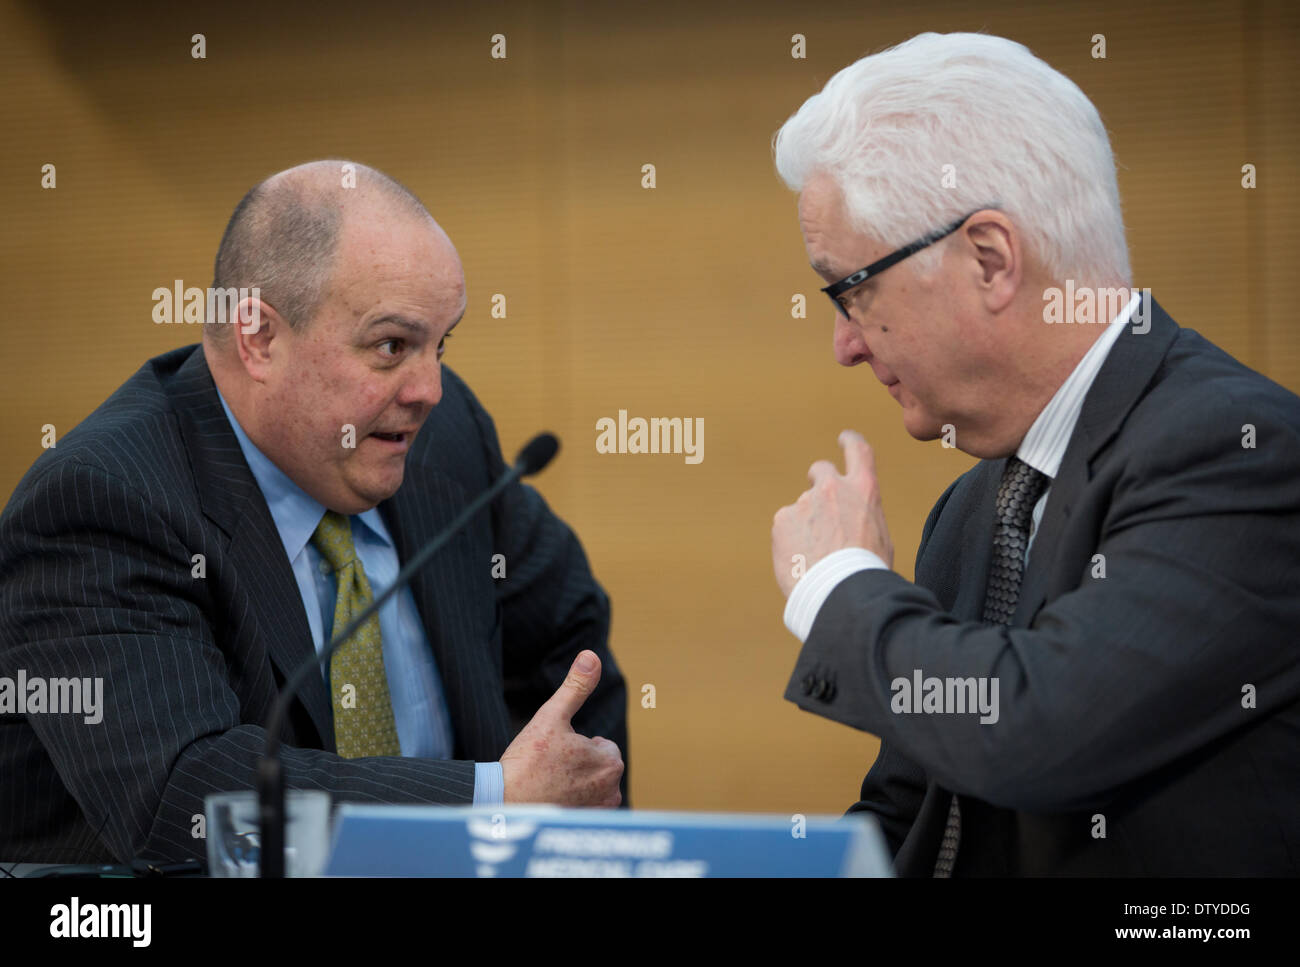 Bad Homburg, Germany. 25th Feb, 2014. CEO of Fresenius Medical Care (FMC), Rice Powell, and CFO Michael Brosnan - Stock Image